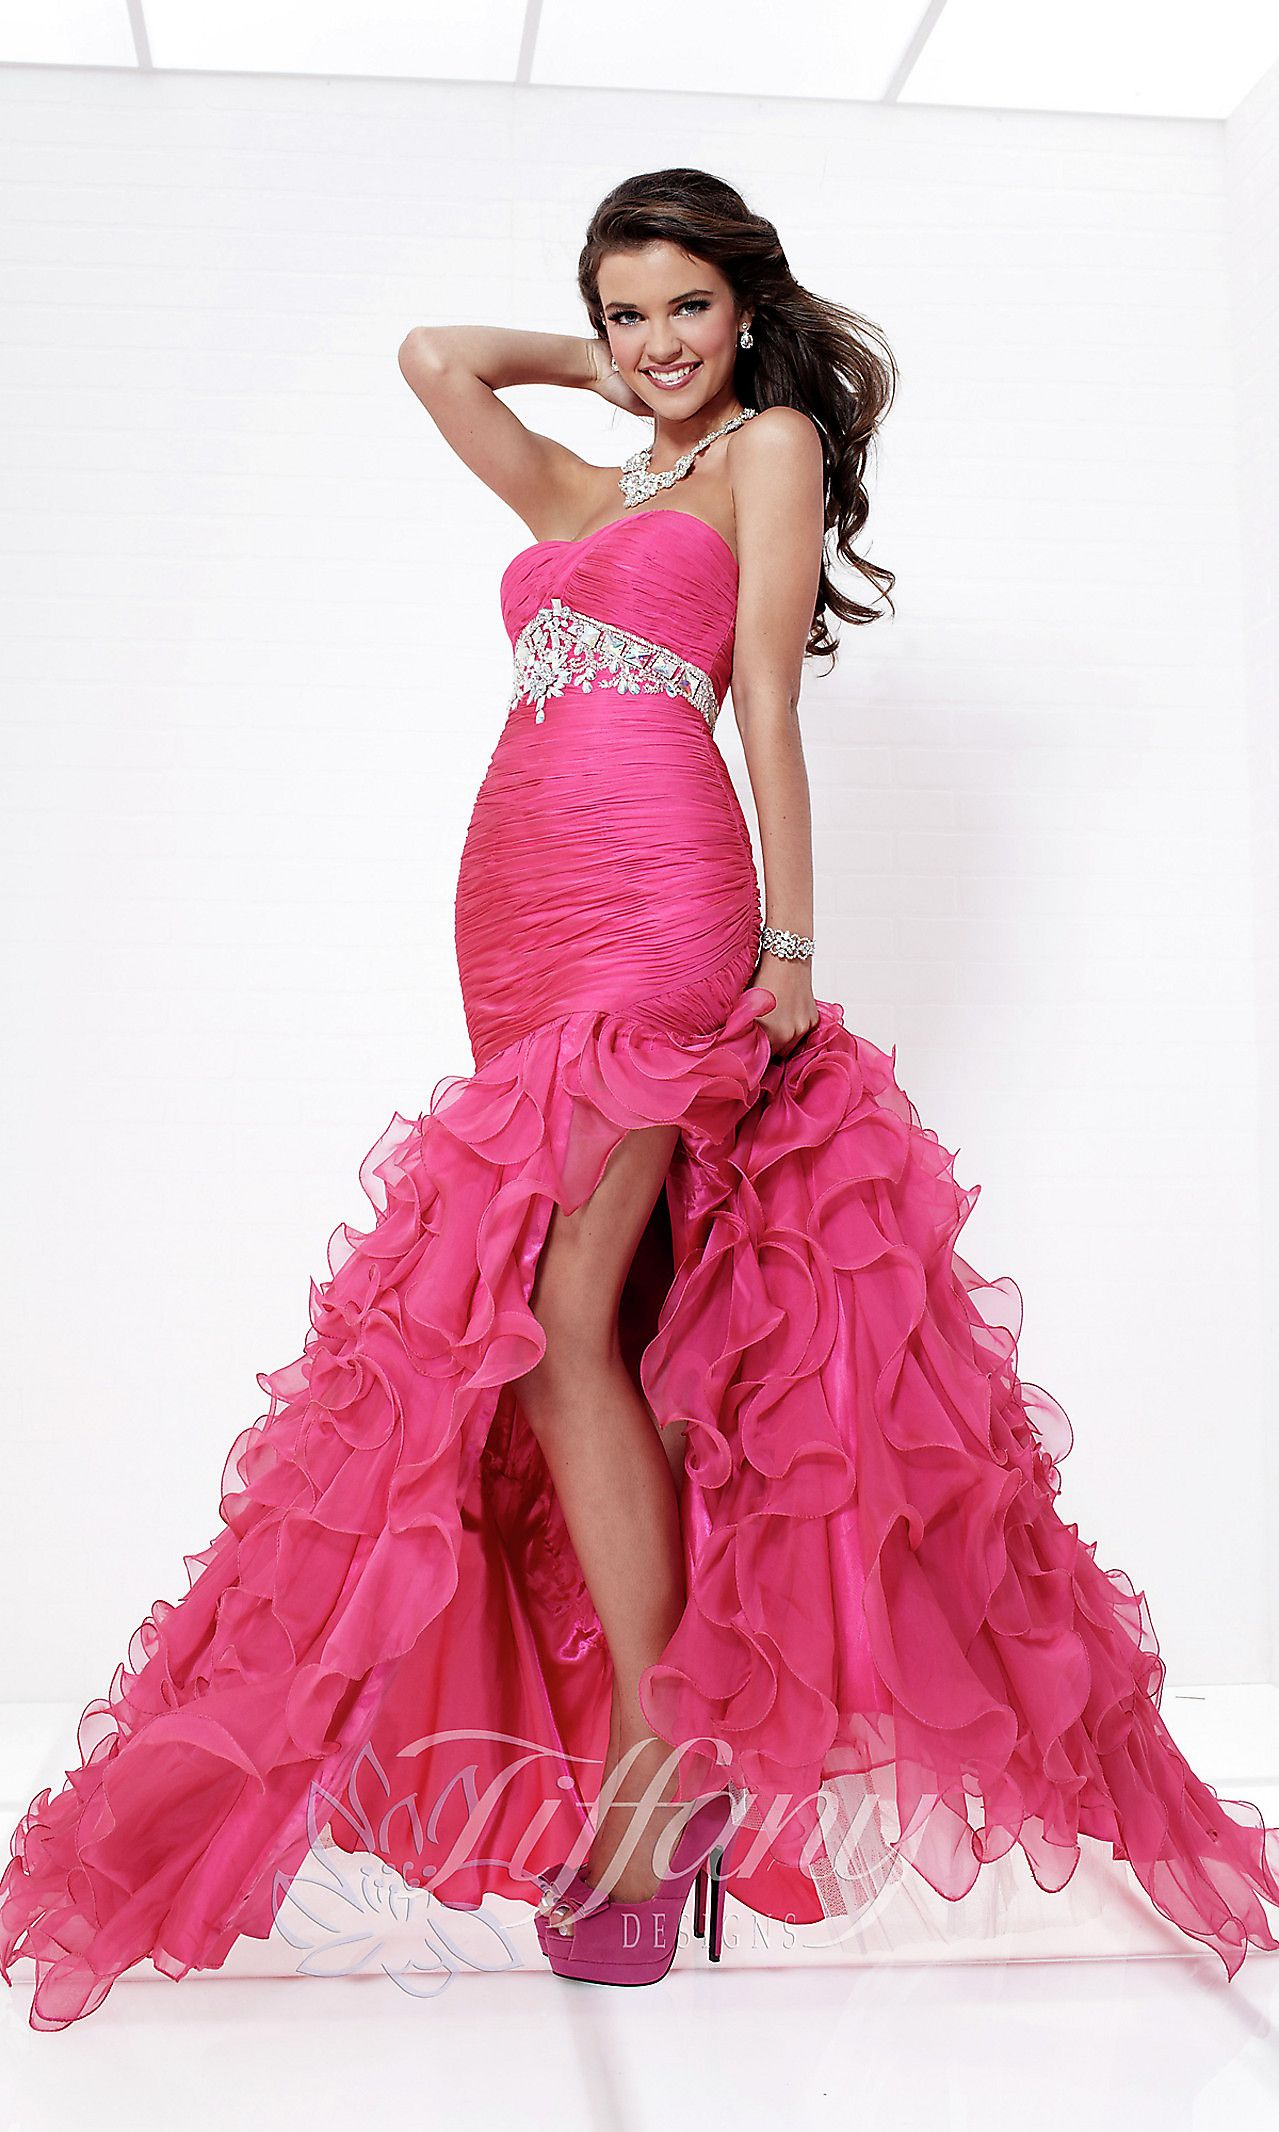 Strapless Ball Gown by Tiffany | Let\'s Dress Up | Pinterest